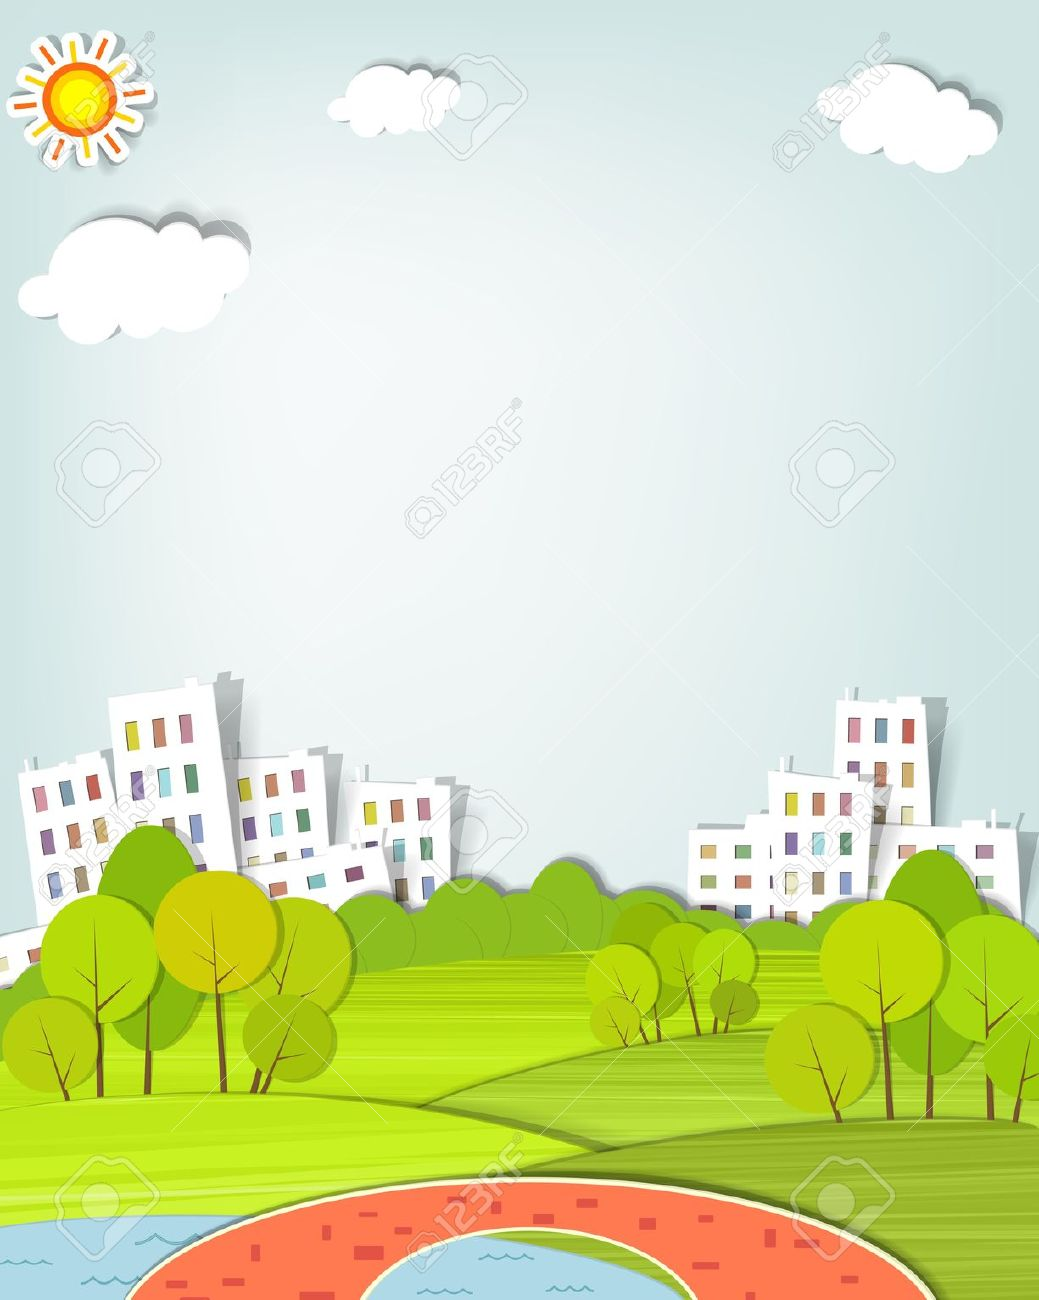 Urban Landscape With Trees, Lake And Bridge Royalty Free Cliparts.